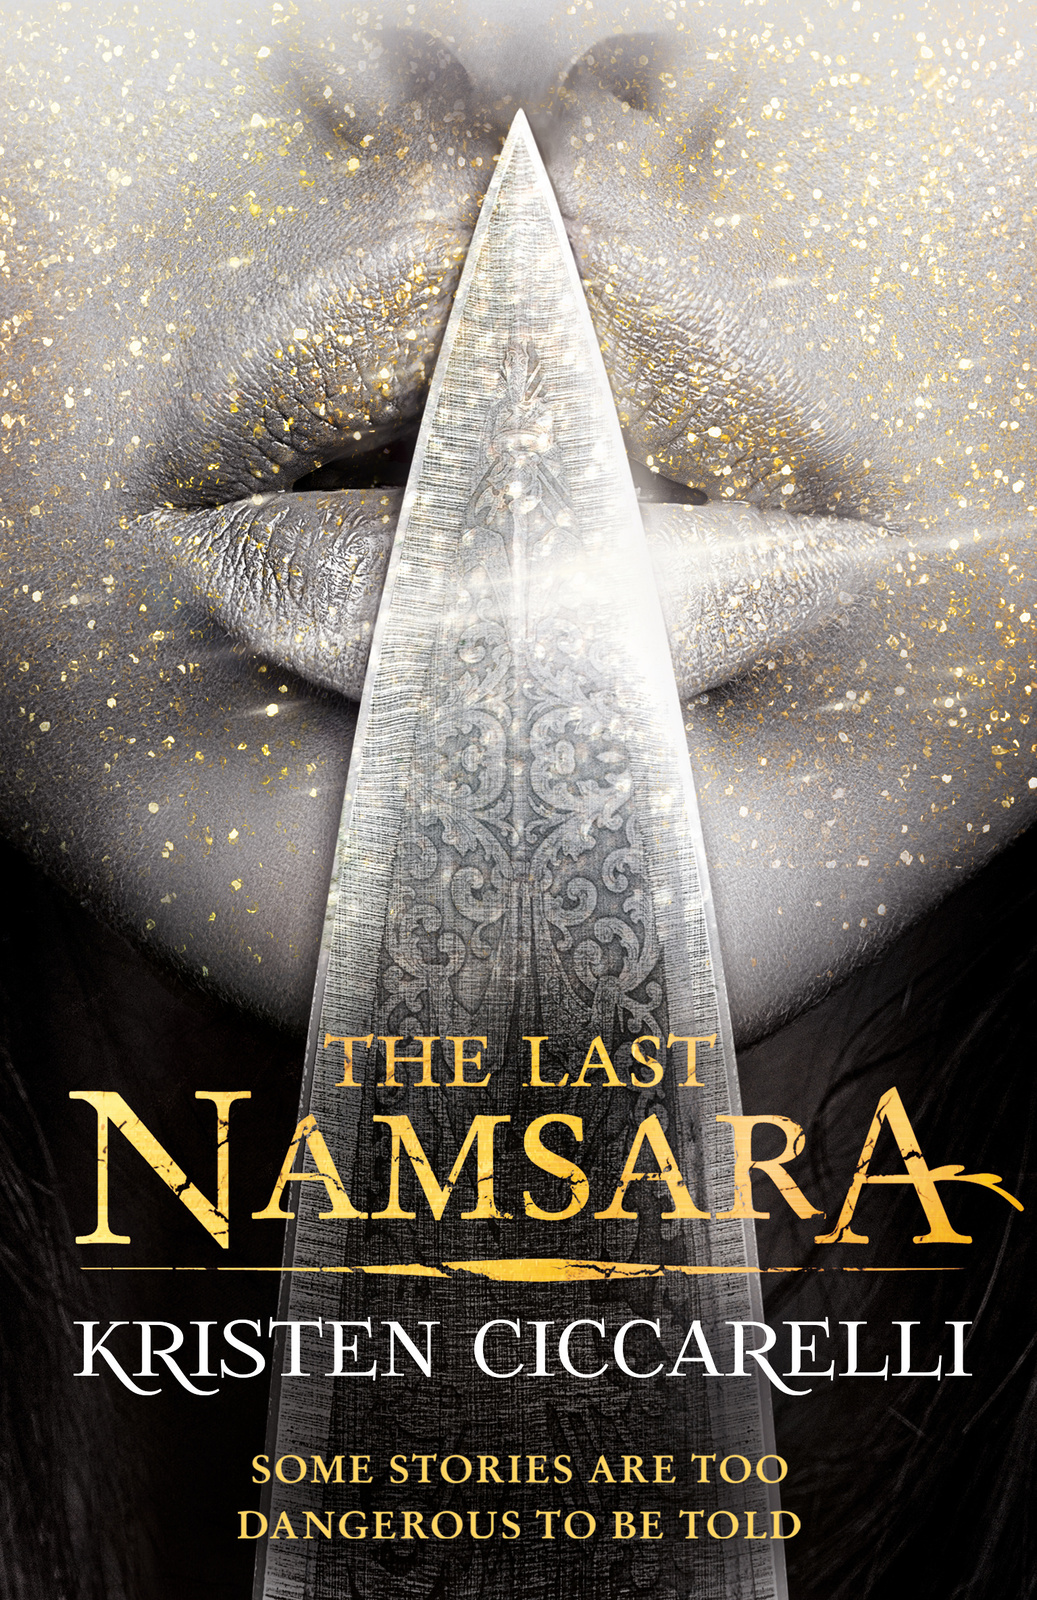 The Last Namsara by Kristen Ciccarelli image